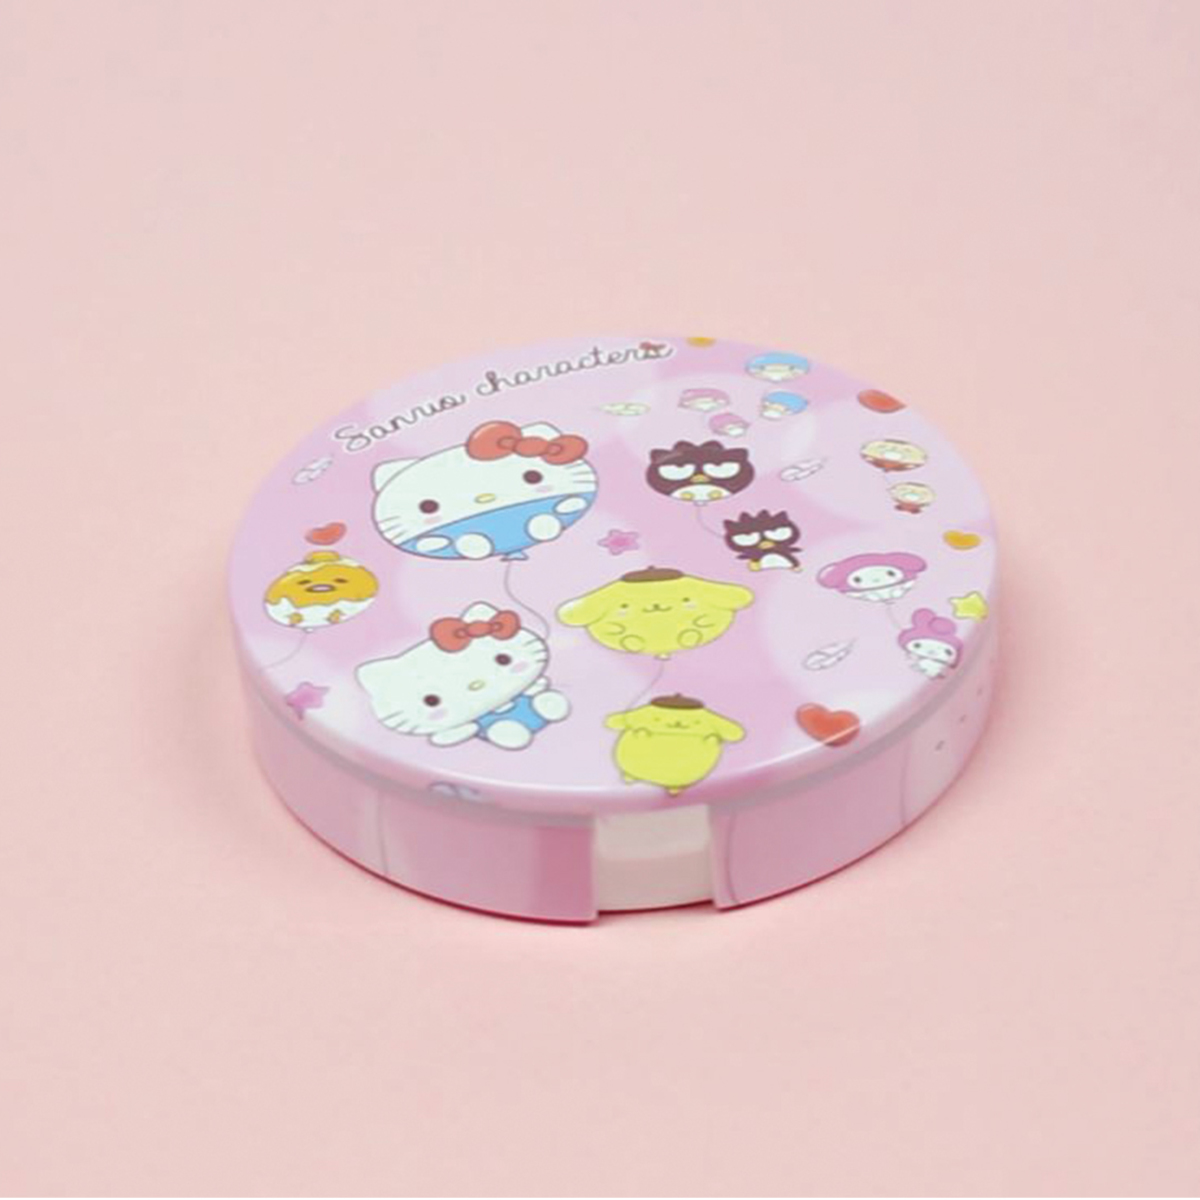 Sanrio SANRIO MIX CHARACTER LED燈鏡盒充電器 4500mah